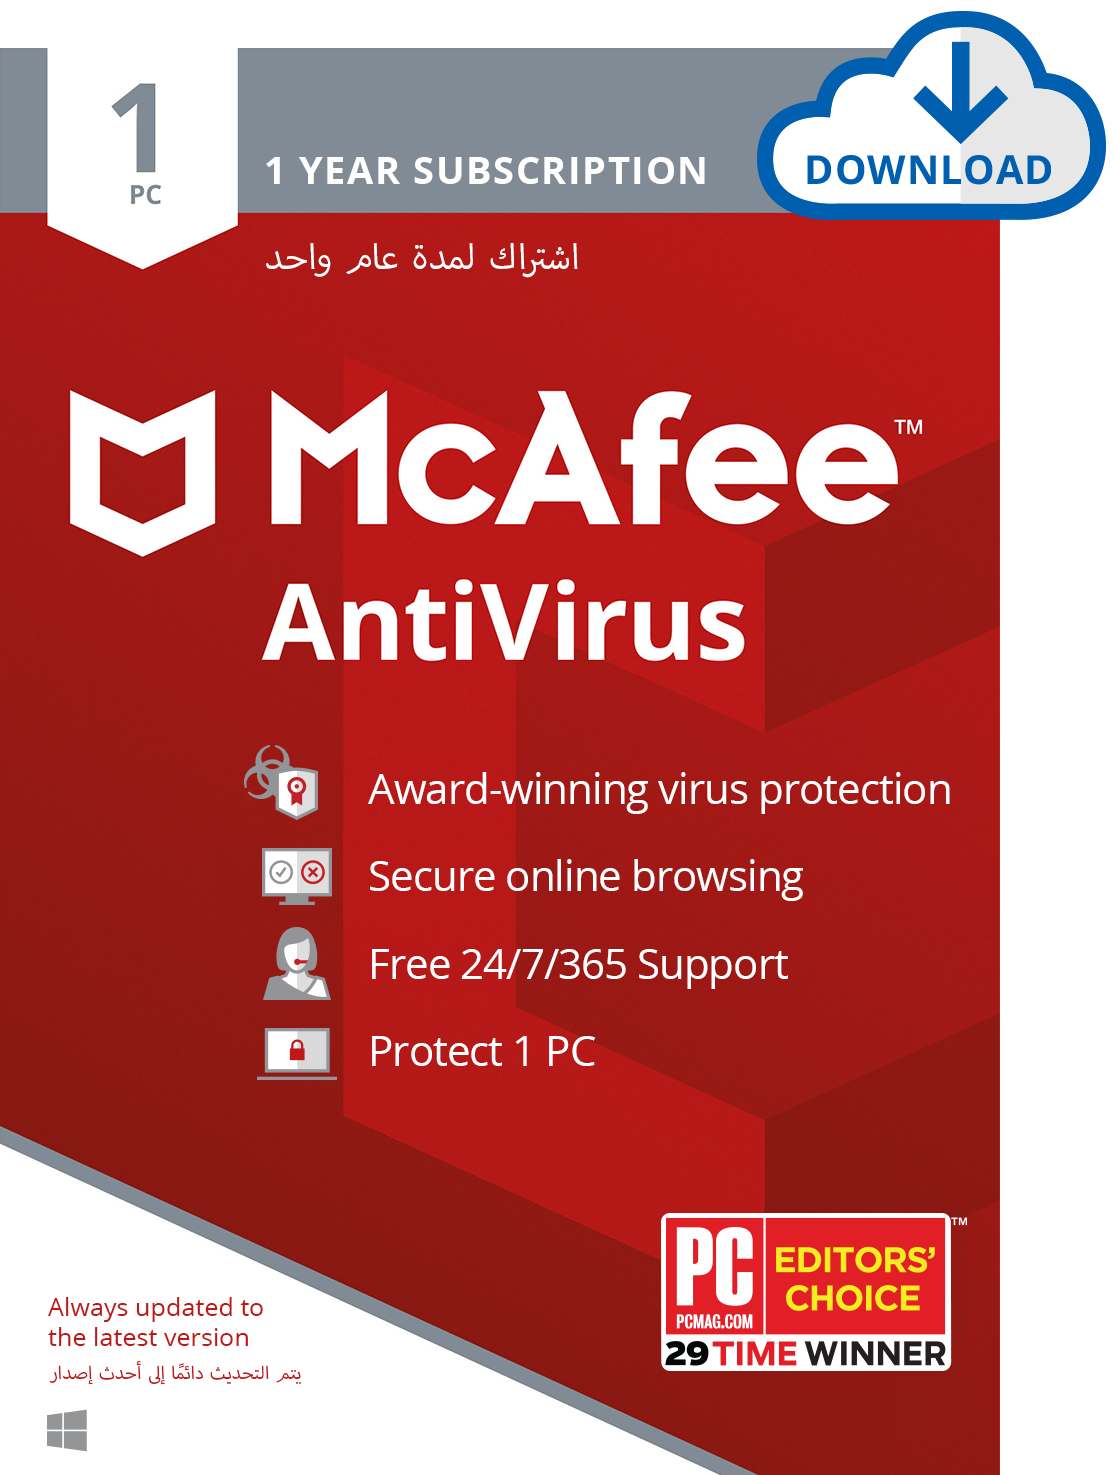 McAfee AntiVirus For 1 PC - Email Delivery